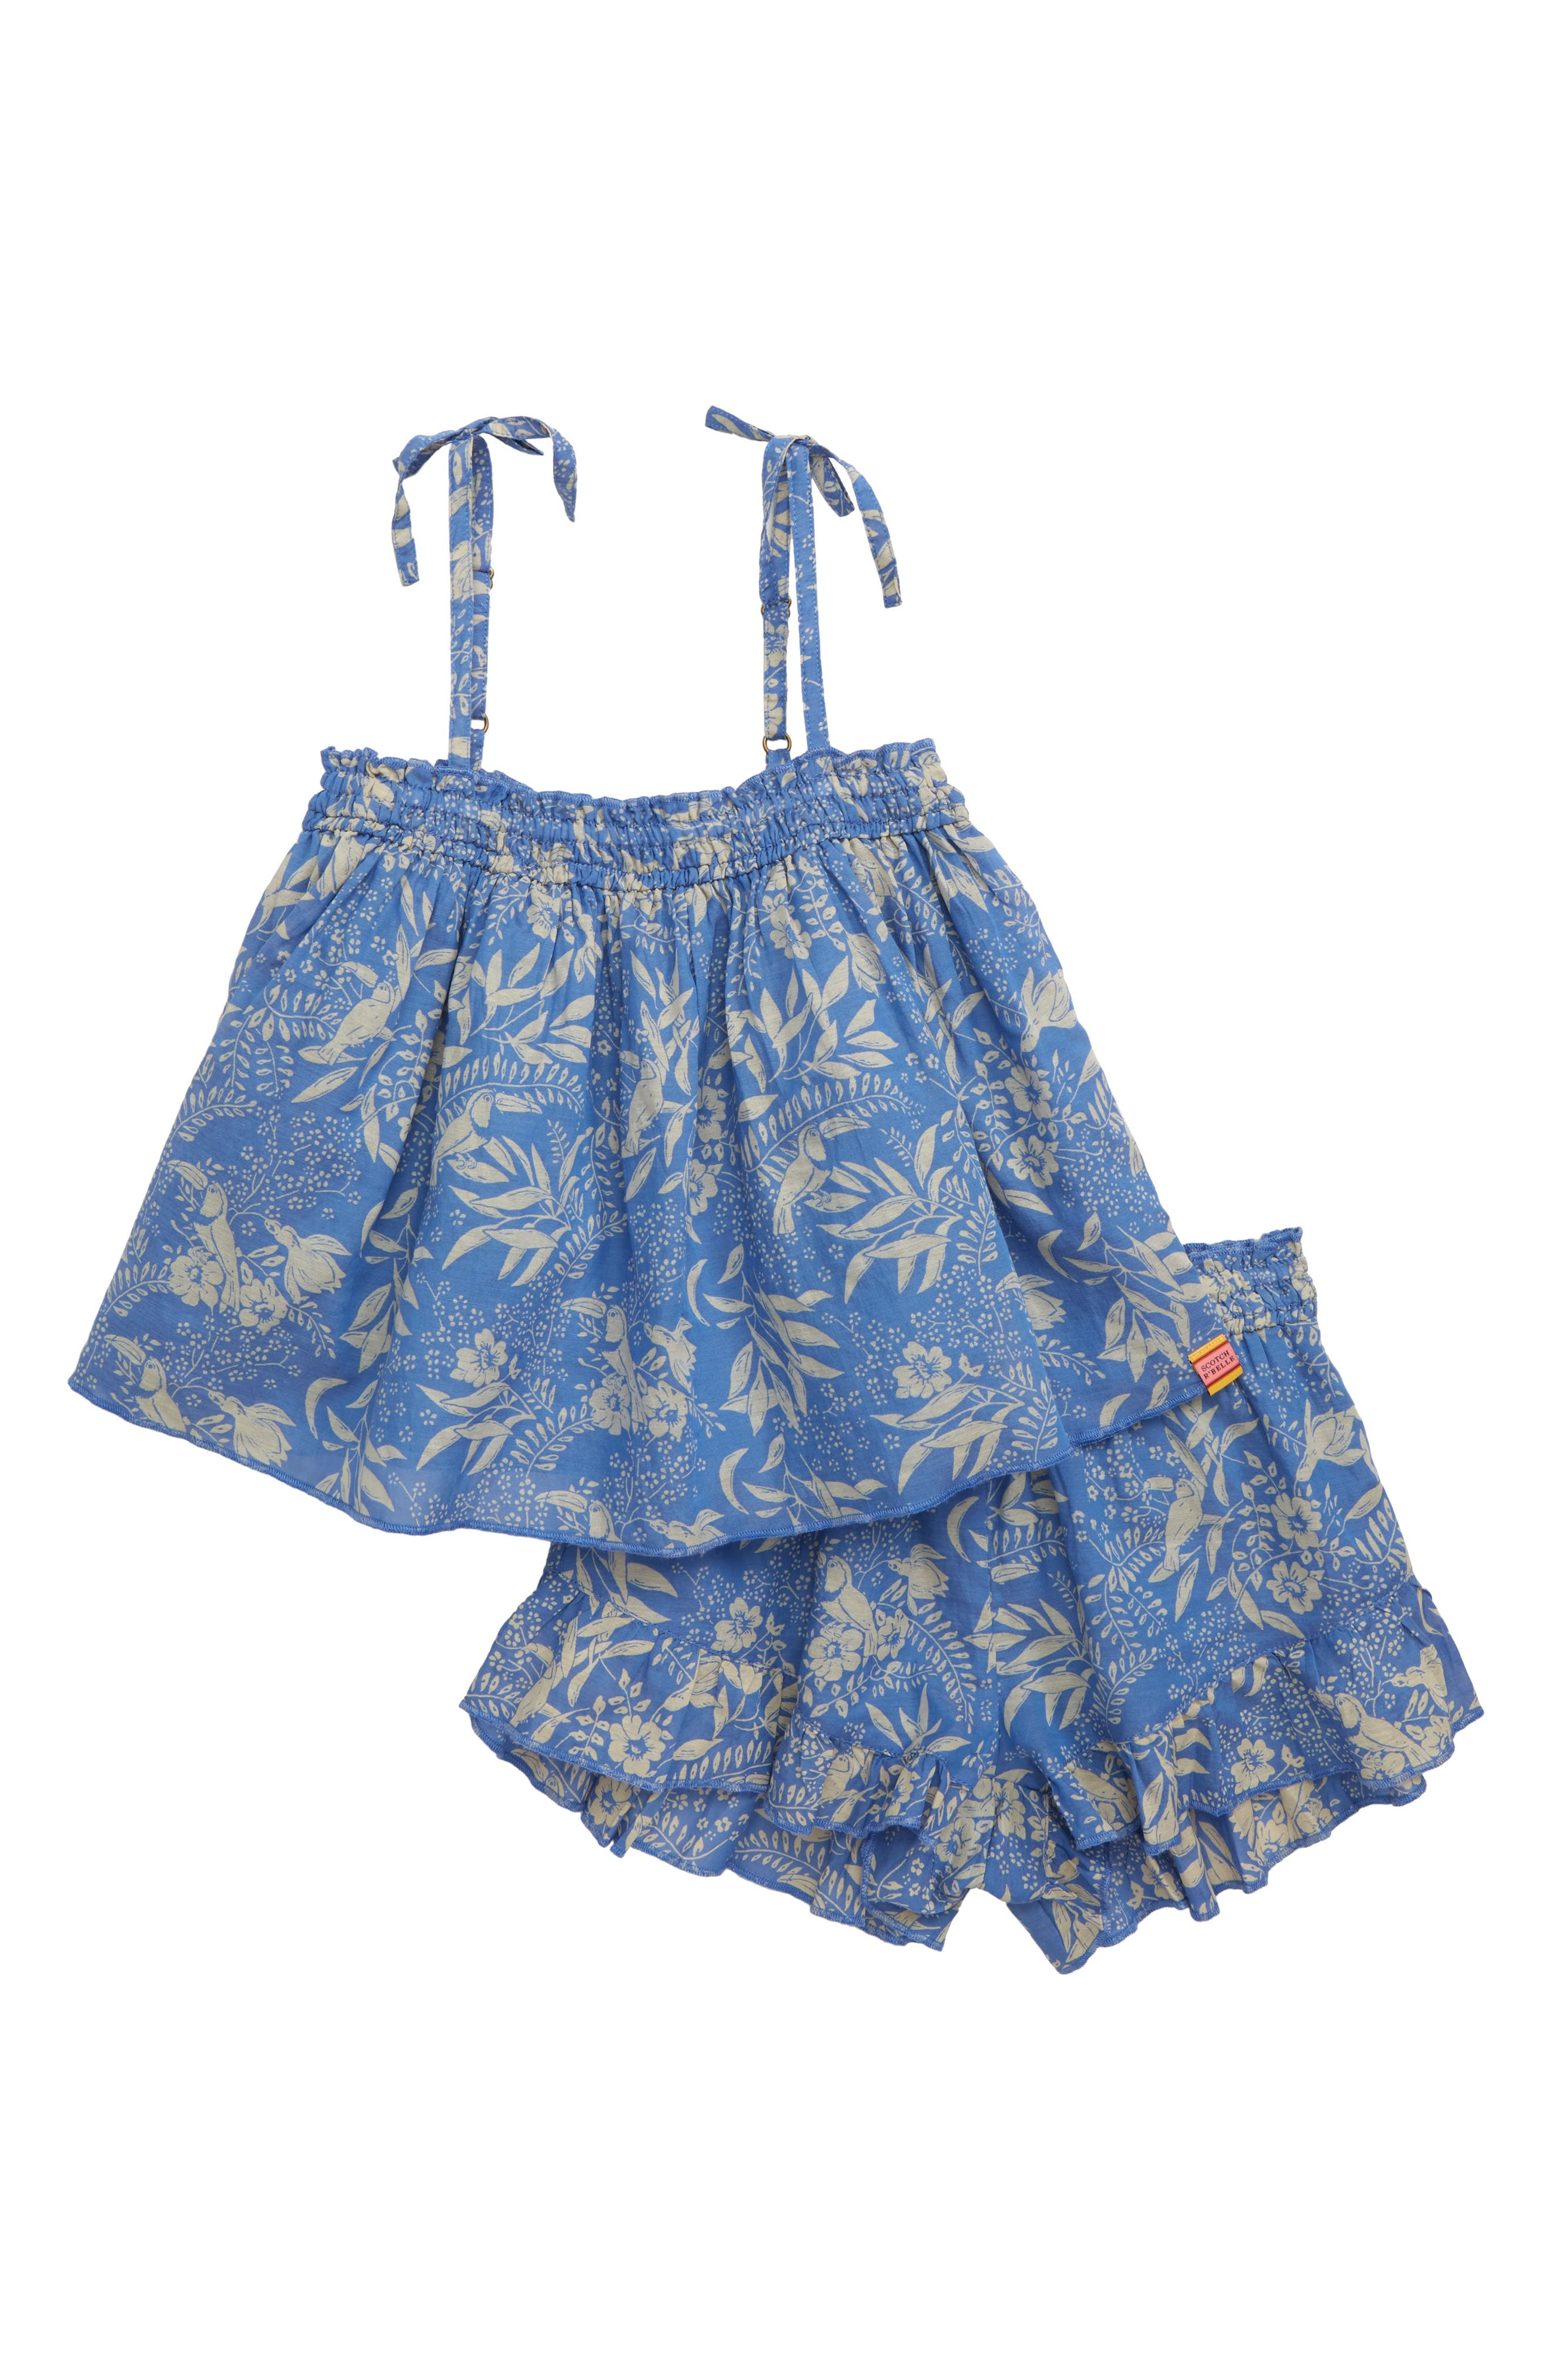 SCOTCH R'BELLE Print Trapeze Top & Shorts Set, Main, color, 603 X BLUE